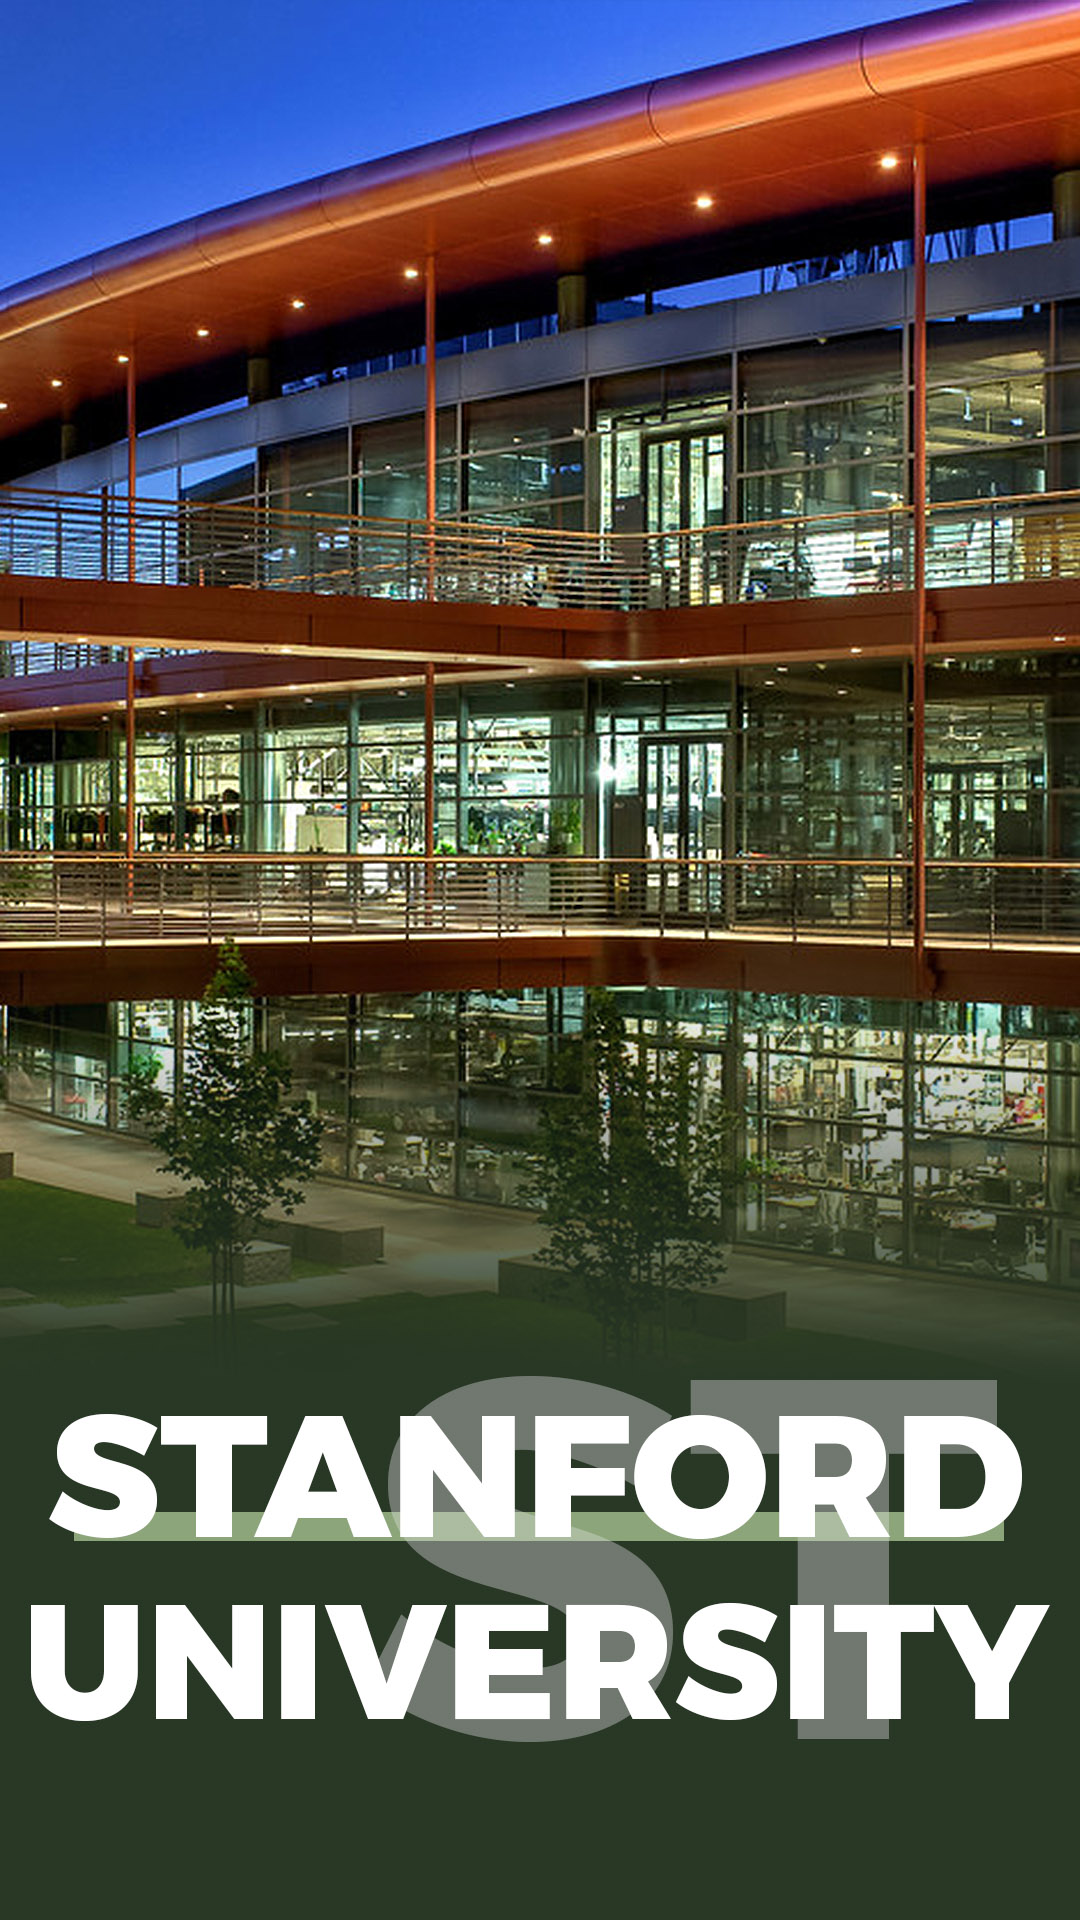 afterteam projects logo 01 stanford university 2020 vertical